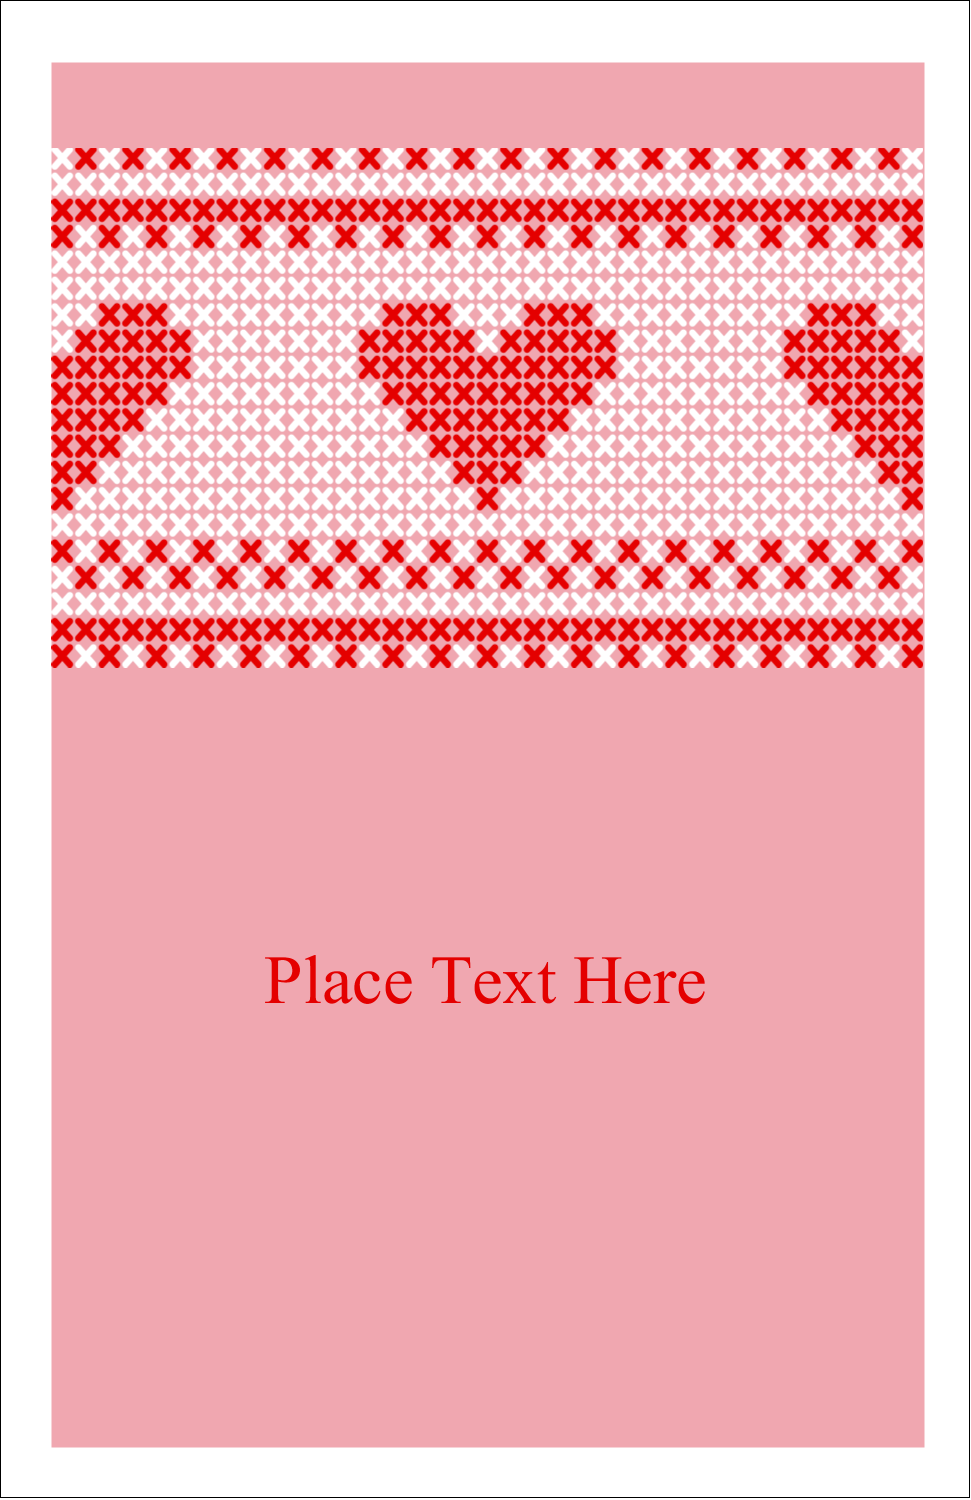 "5"" x 8½"" Half Fold Card - Valentine Cross Stitch"